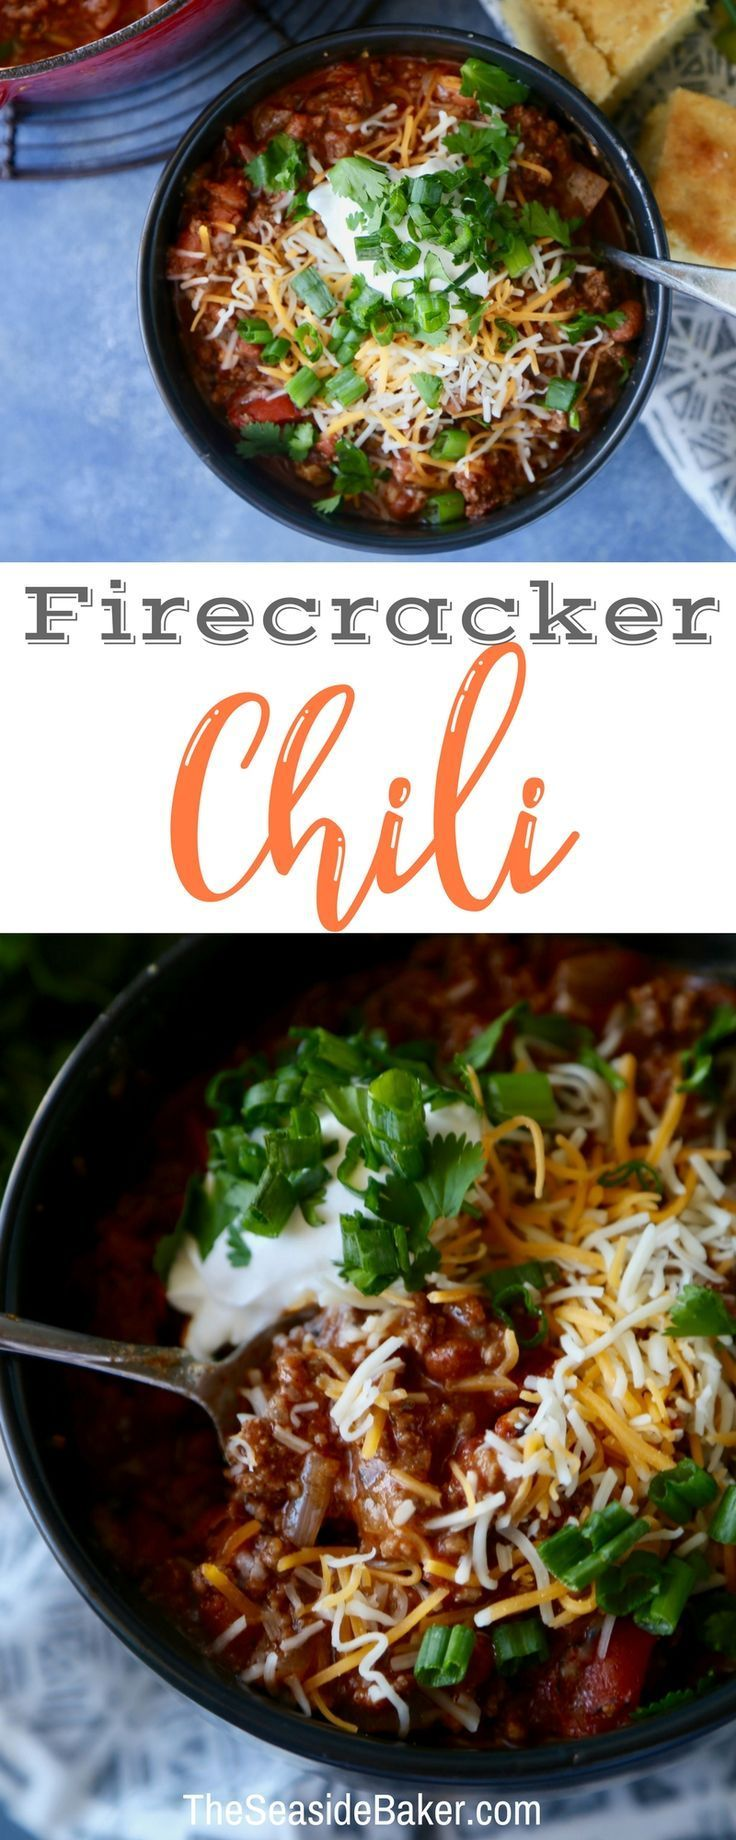 Firecracker Chili Recipe - spicy and perfect for cool fall or winter nights! | #theseasidebaker #chili #chilirecipe #dinnerrecipe #firecrackerchili #fallrecipe | see this and other delicious recipes at TheSeasideBaker.com #chilirecipe